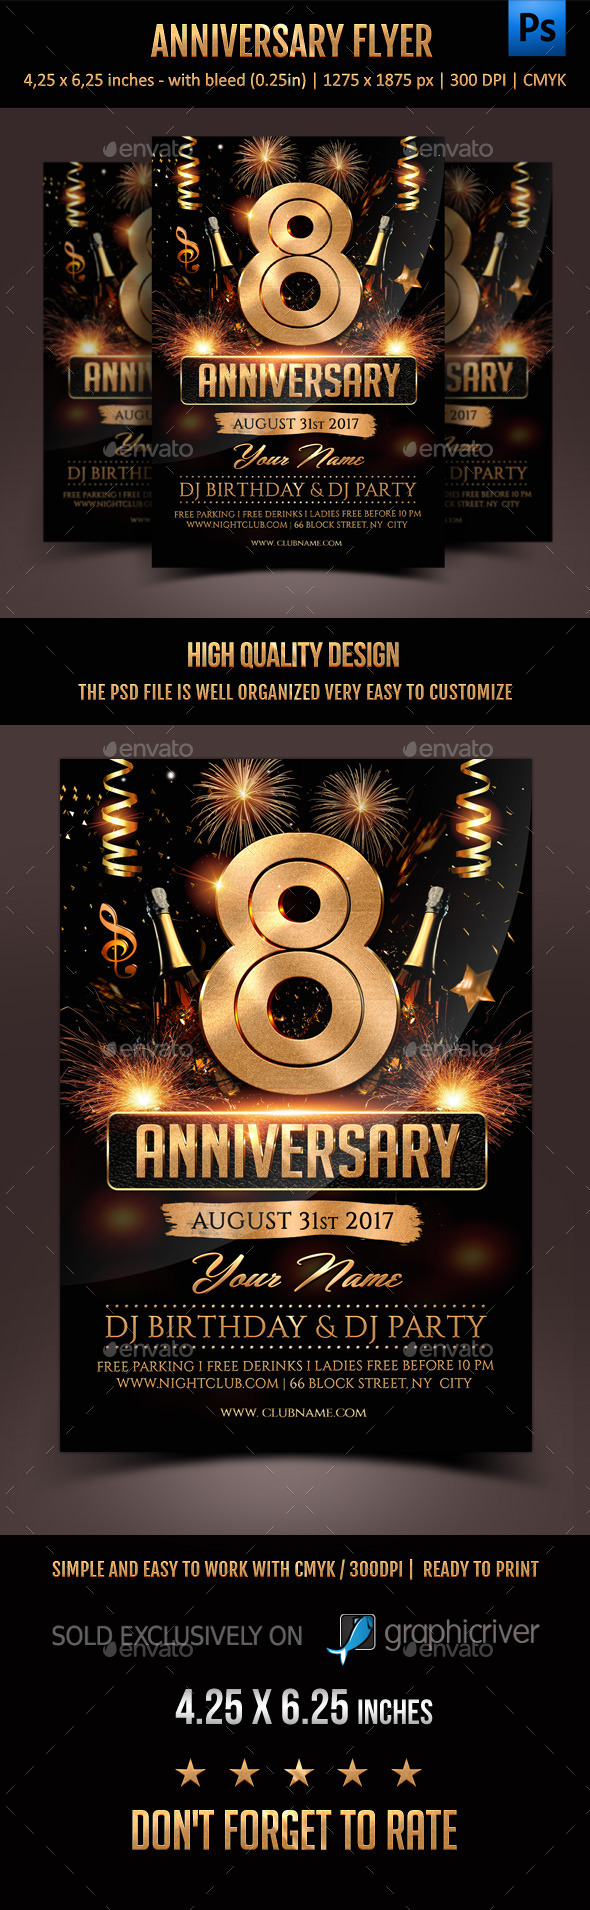 Anniversary Flyer by Rembassio | GraphicRiver